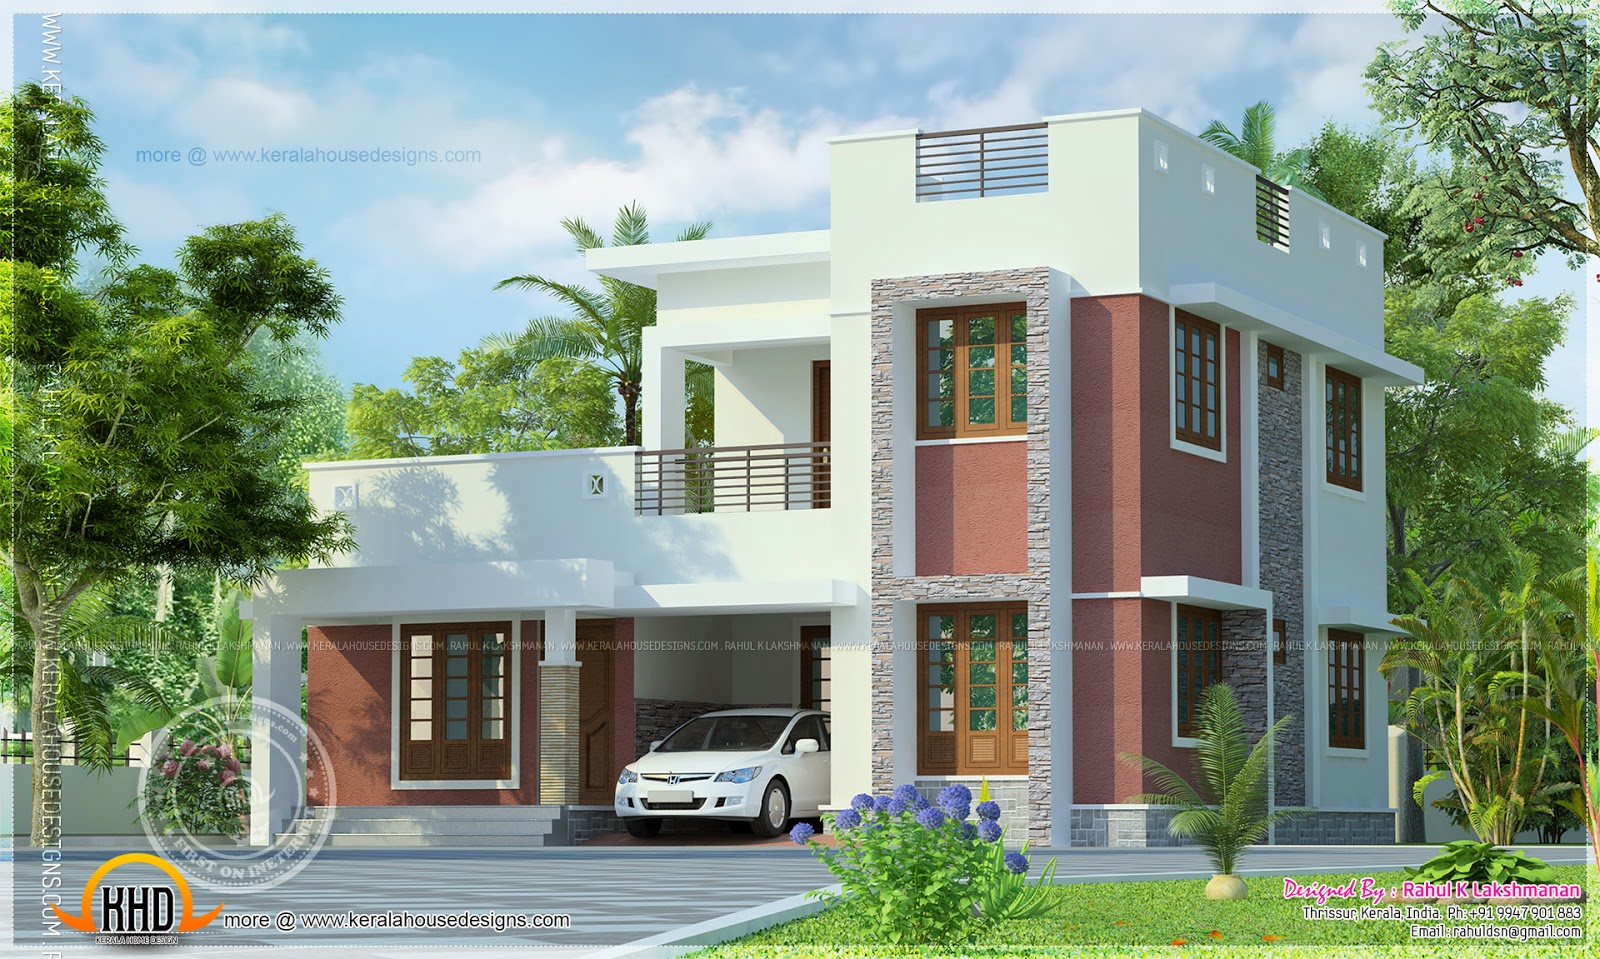 Simple flat roof house exterior kerala home design and for Flat roof home plans